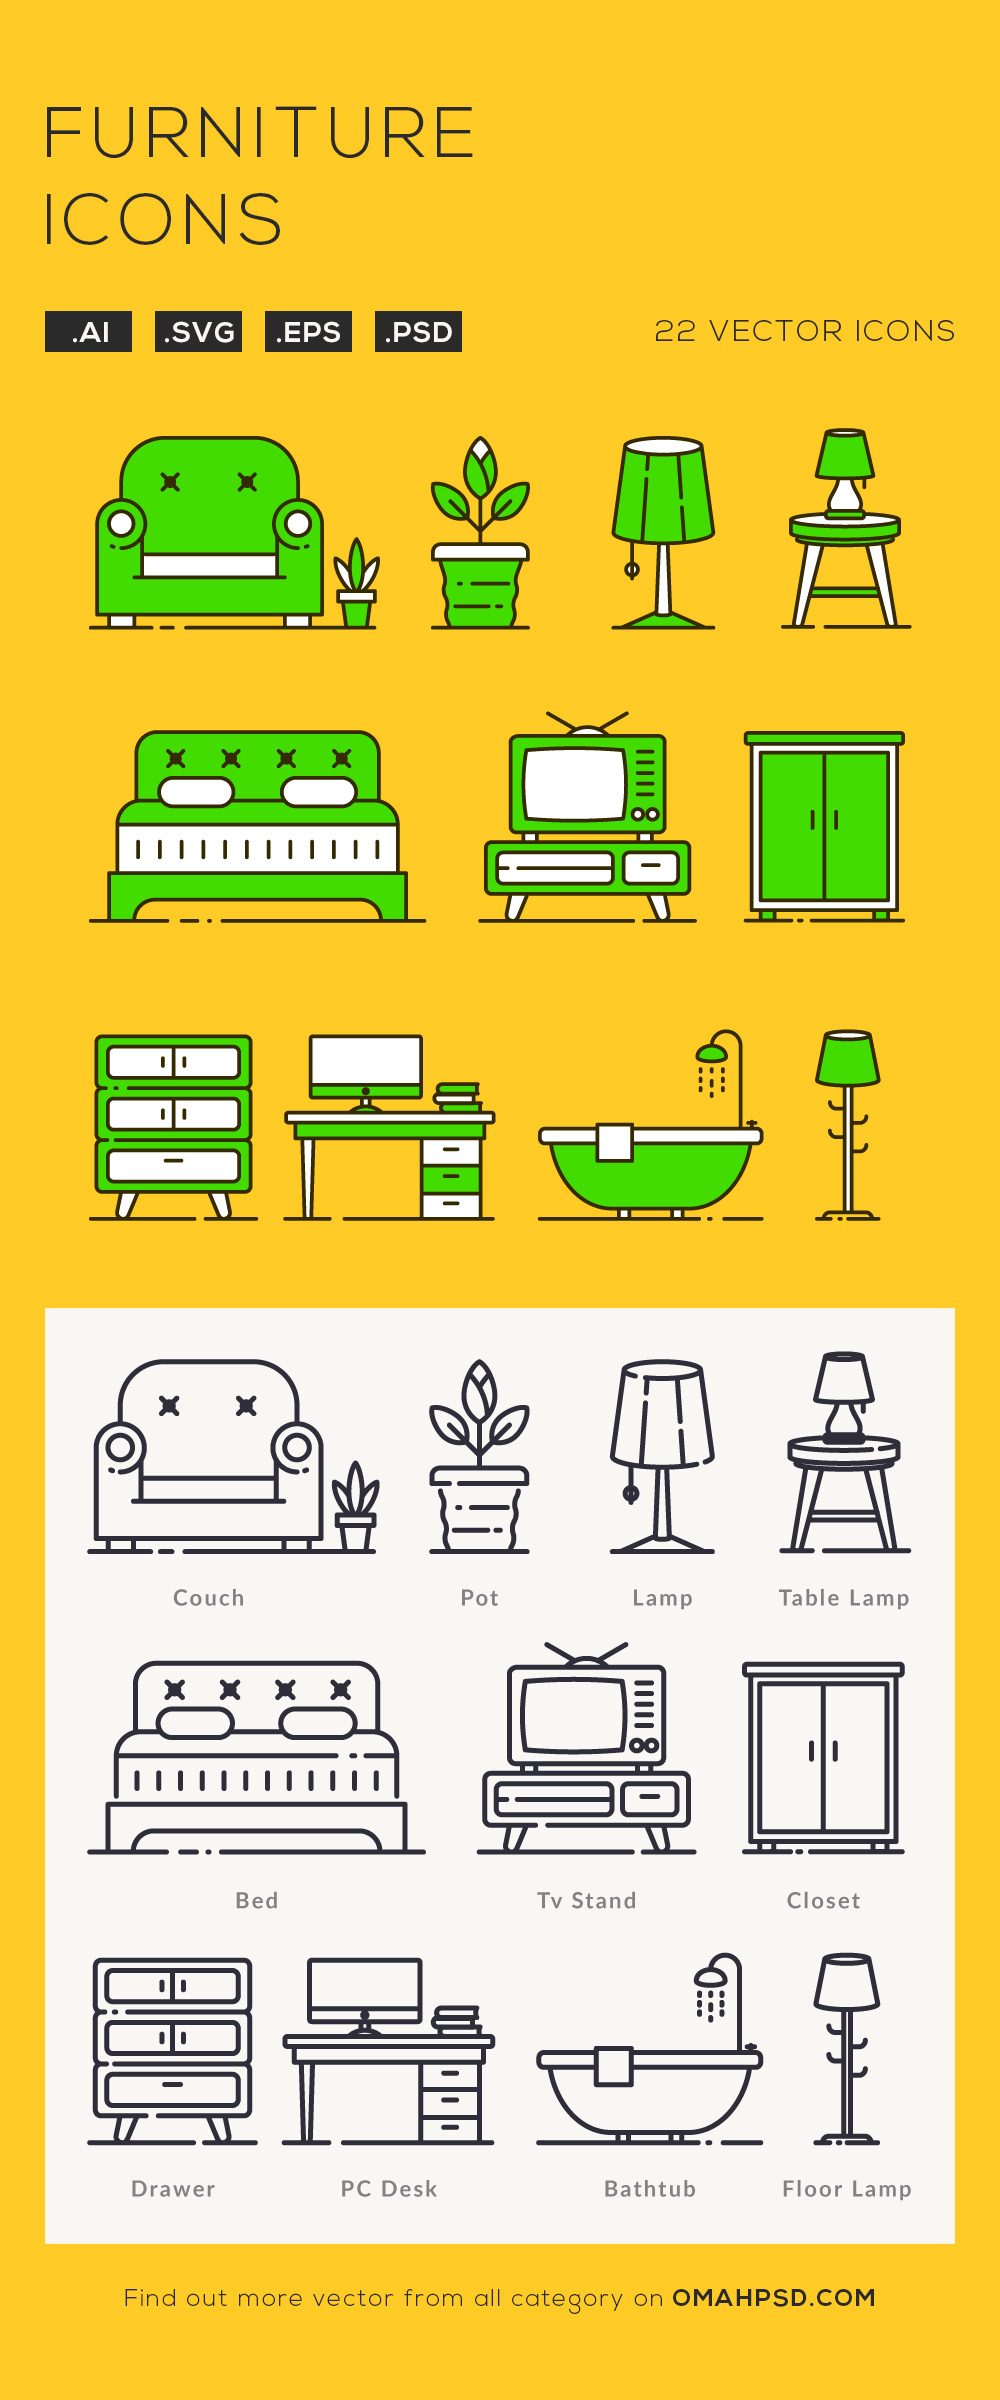 Free Furniture Icons Preview